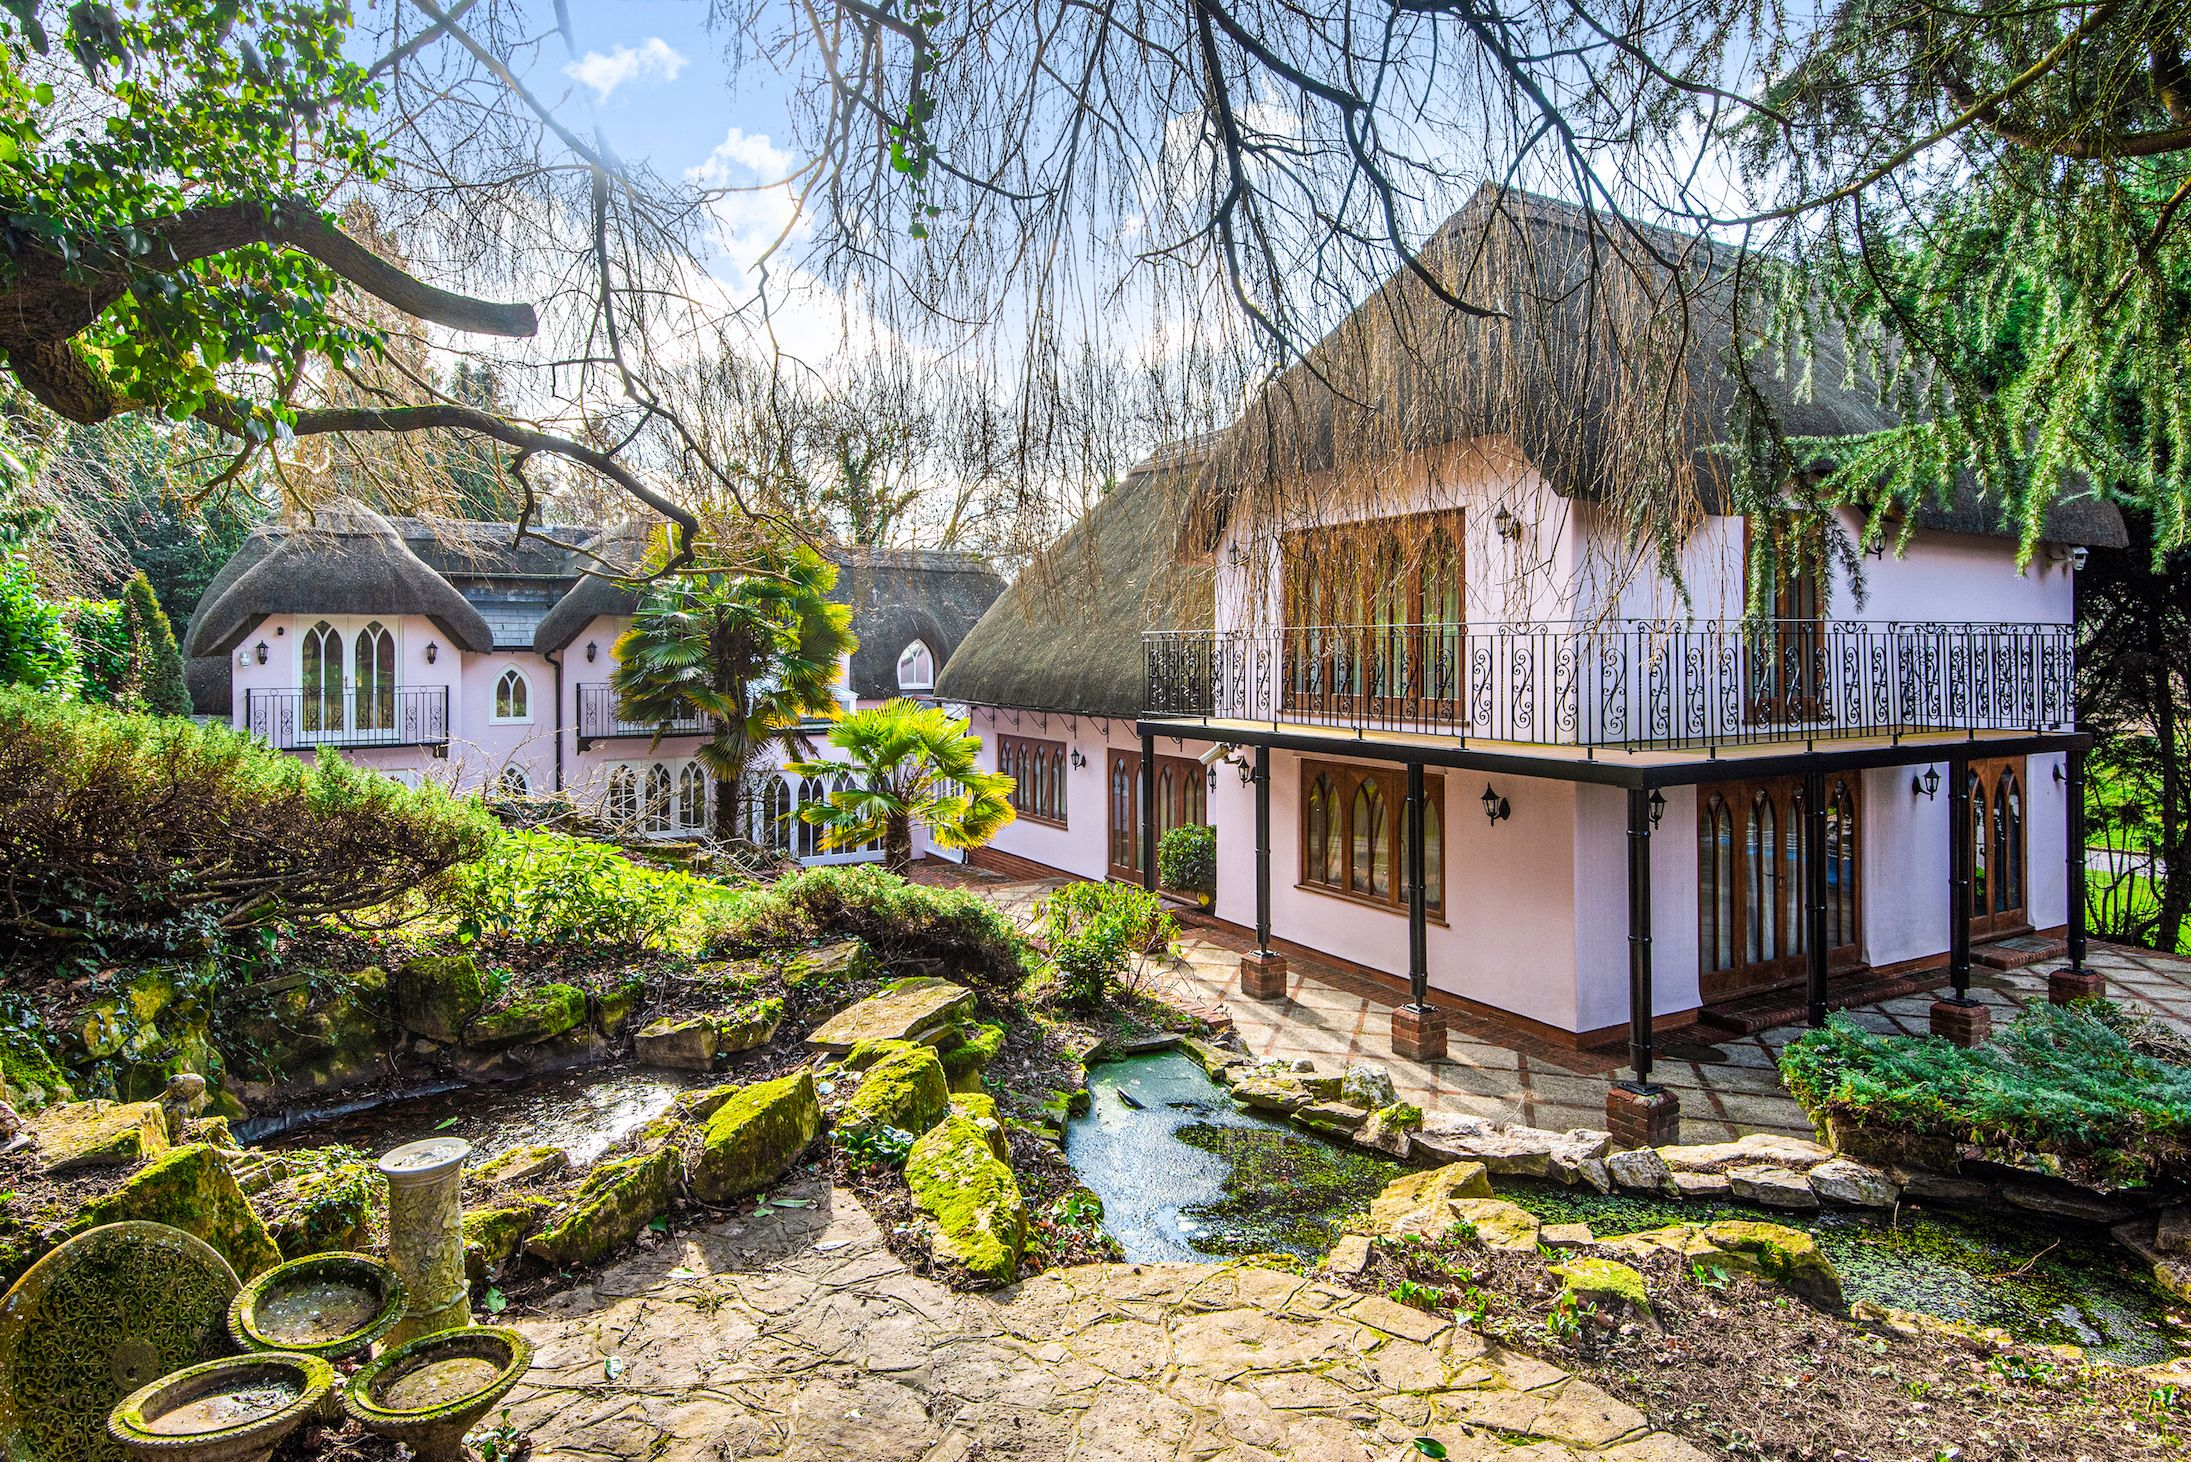 This enchanting pink period cottage for sale in Hampshire looks like it belongs in a fairy tale